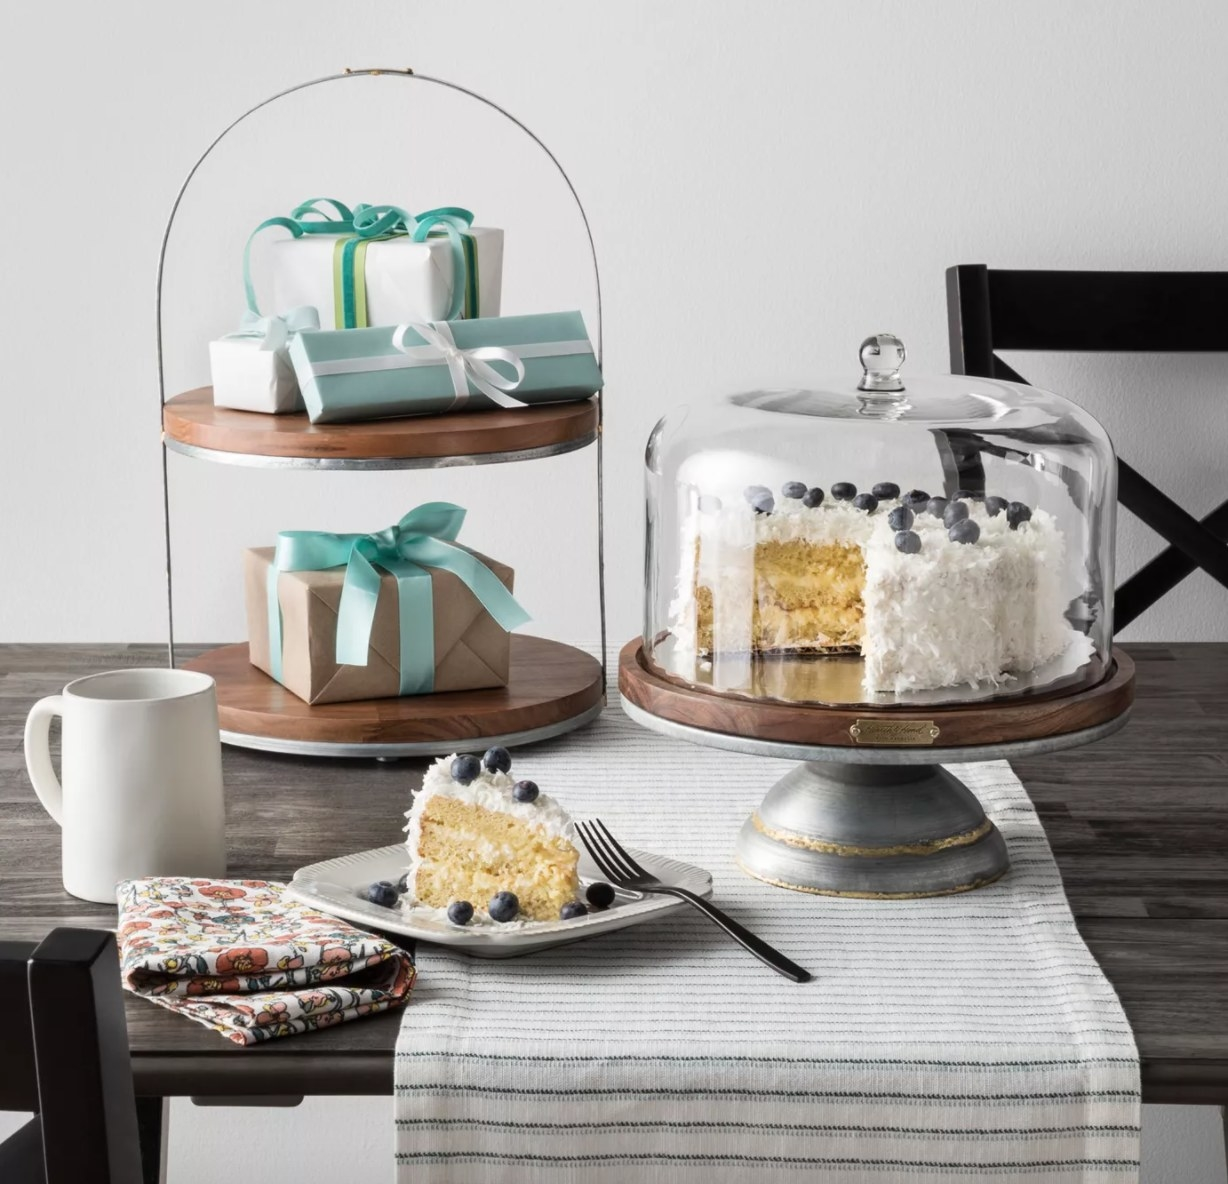 A two tiered dessert stand with wooden surface and metal frame